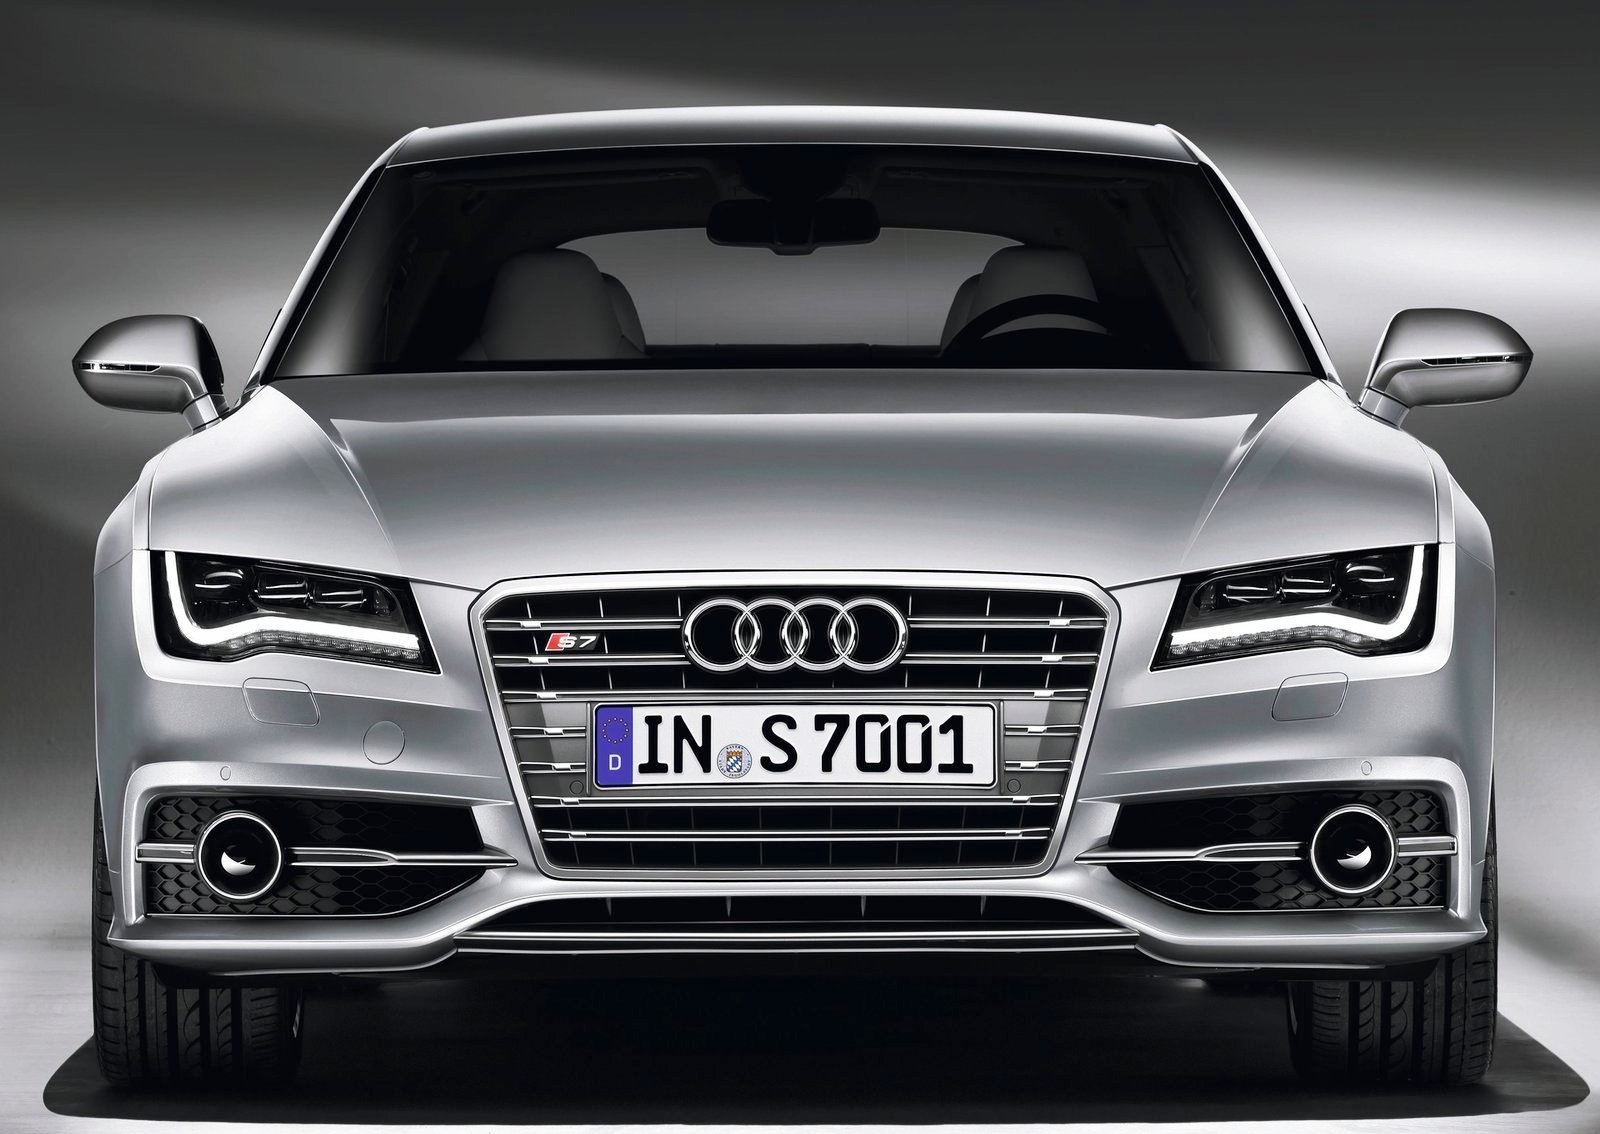 Latest Audi S7 Sportback Front View Car Pictures Images Free Download